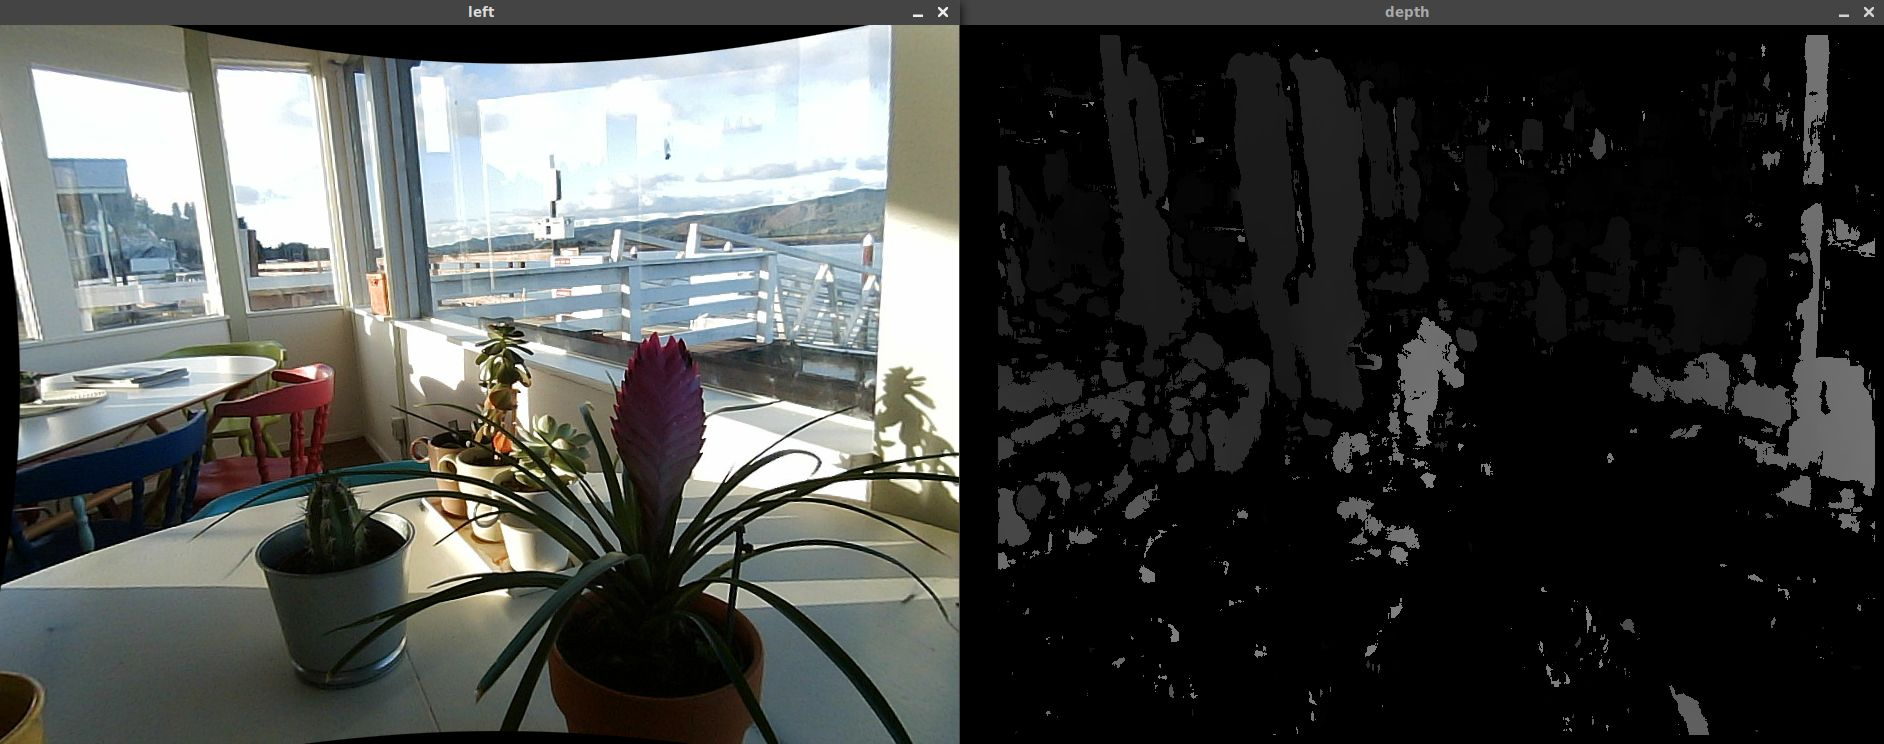 Potted plants and a noisy depth map